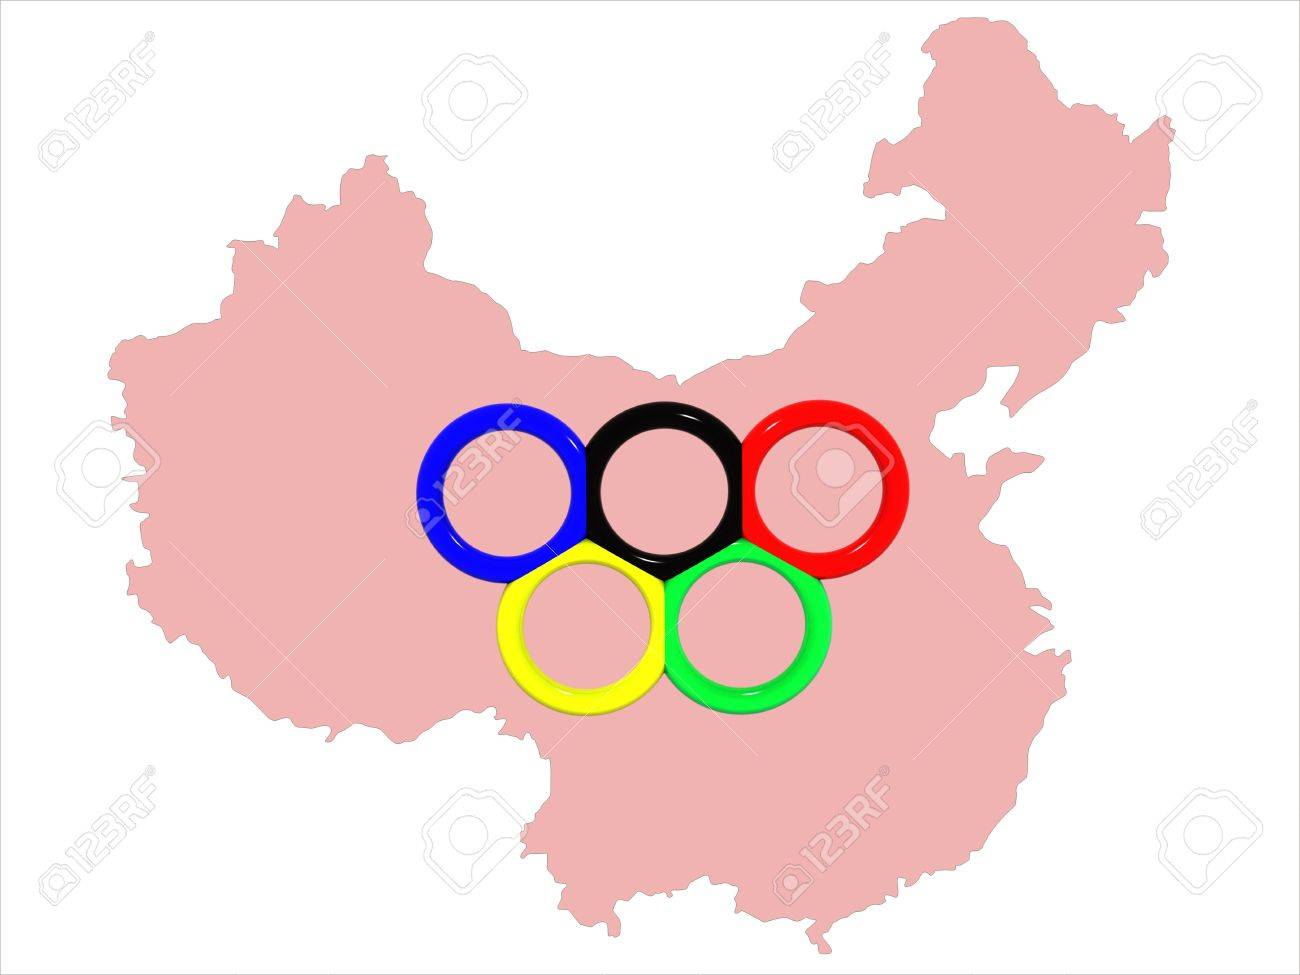 The image of a map of china with a symbol of olympic games the image of a map of china with a symbol of olympic games olympic rings biocorpaavc Images